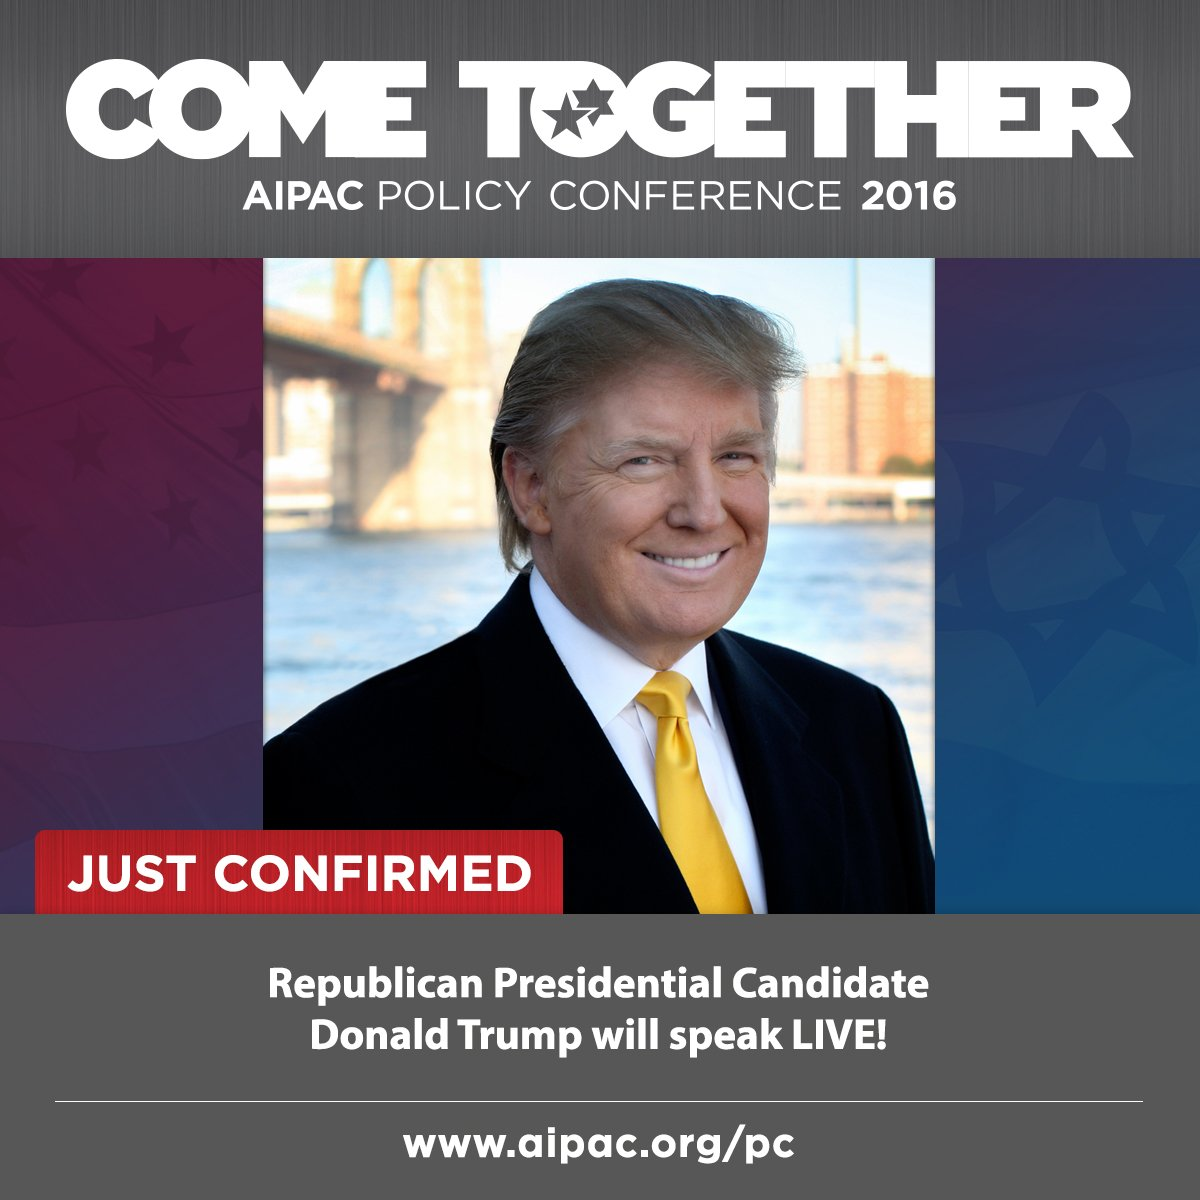 JUST CONFIRMED: @realDonaldTrump will deliver LIVE remarks at #PC16 https://t.co/dtrXG4IojX https://t.co/rDa3xfQl3I